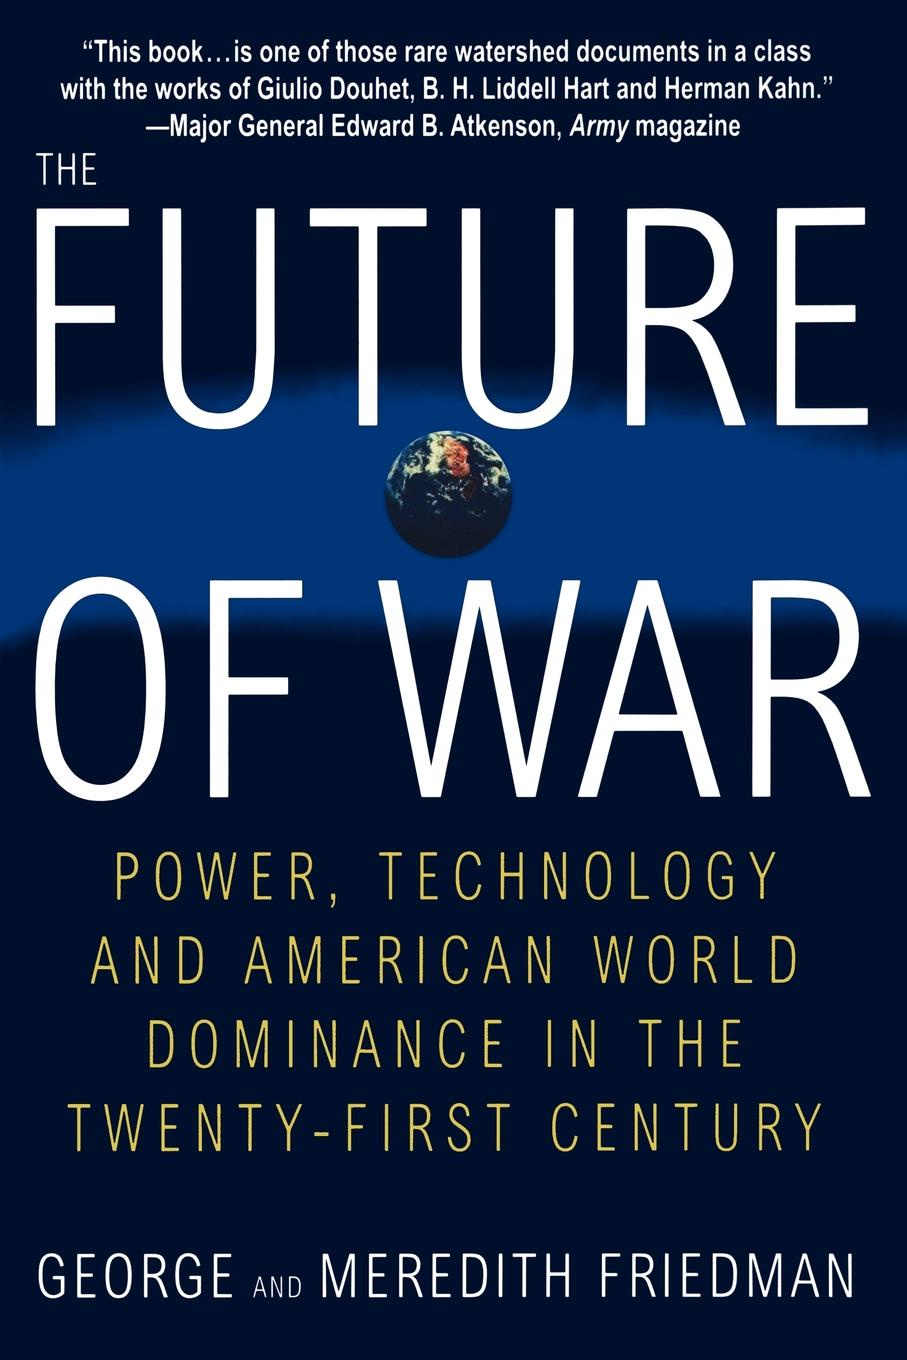 The Future of War. Power, Technology and American World Dominance in the Twenty-First Century